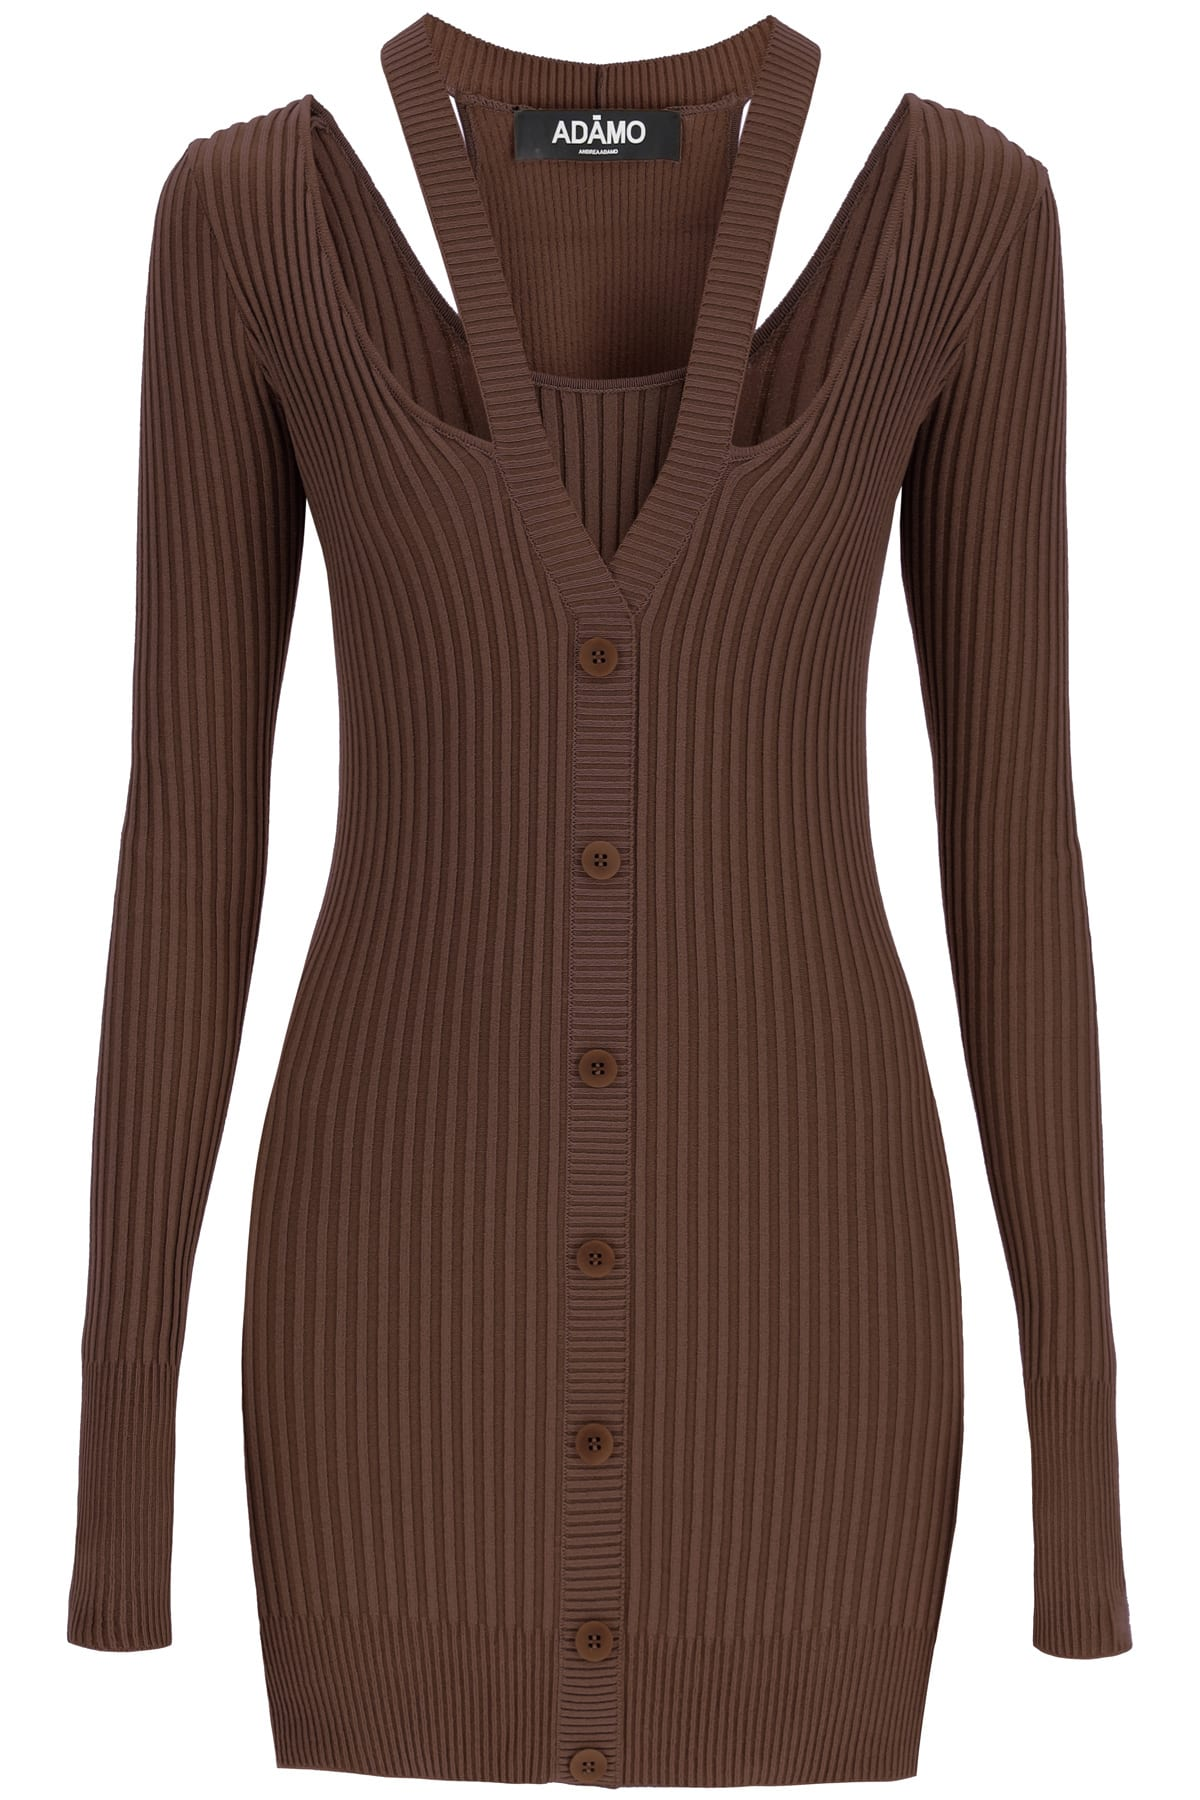 Buy Andrea Adamo Knit Mini Dress With Cut-out online, shop Andrea Adamo with free shipping